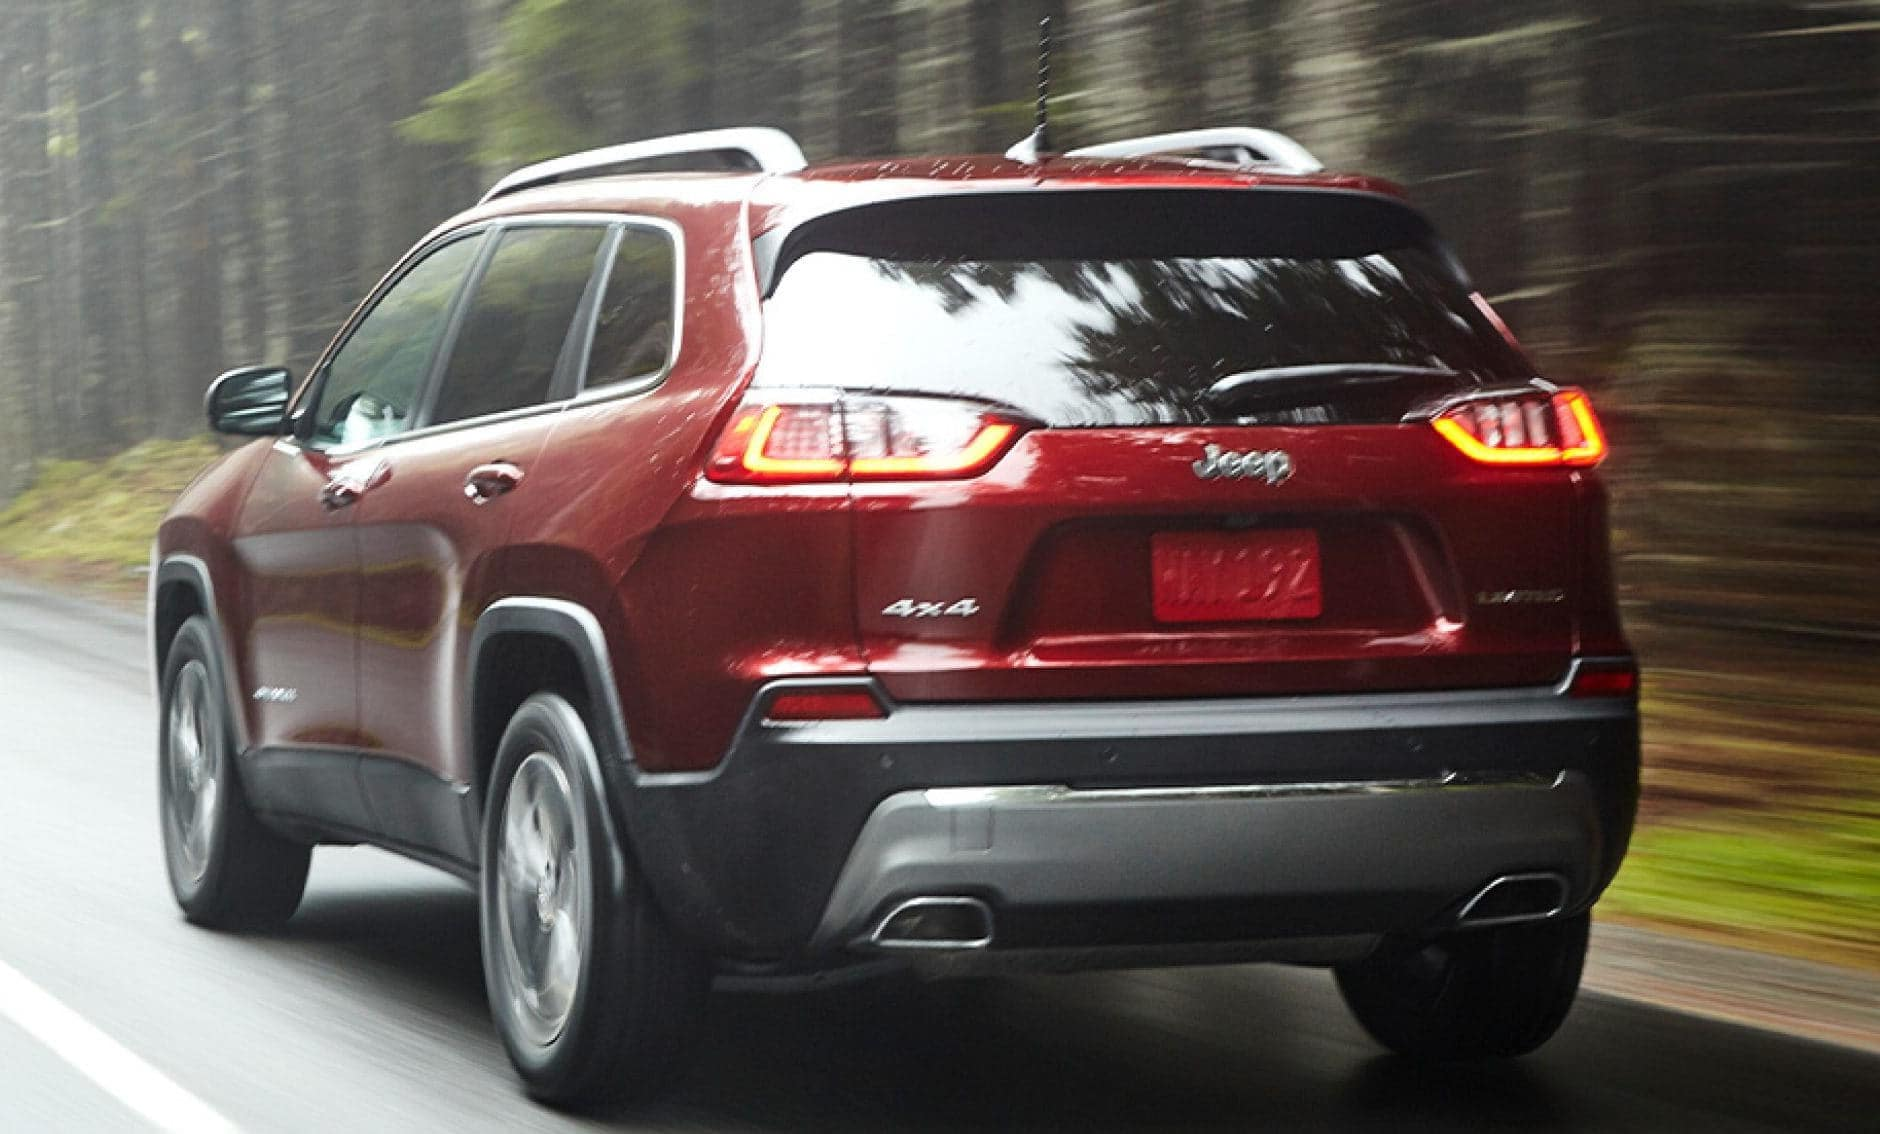 2021 jeep cherokee exterior red